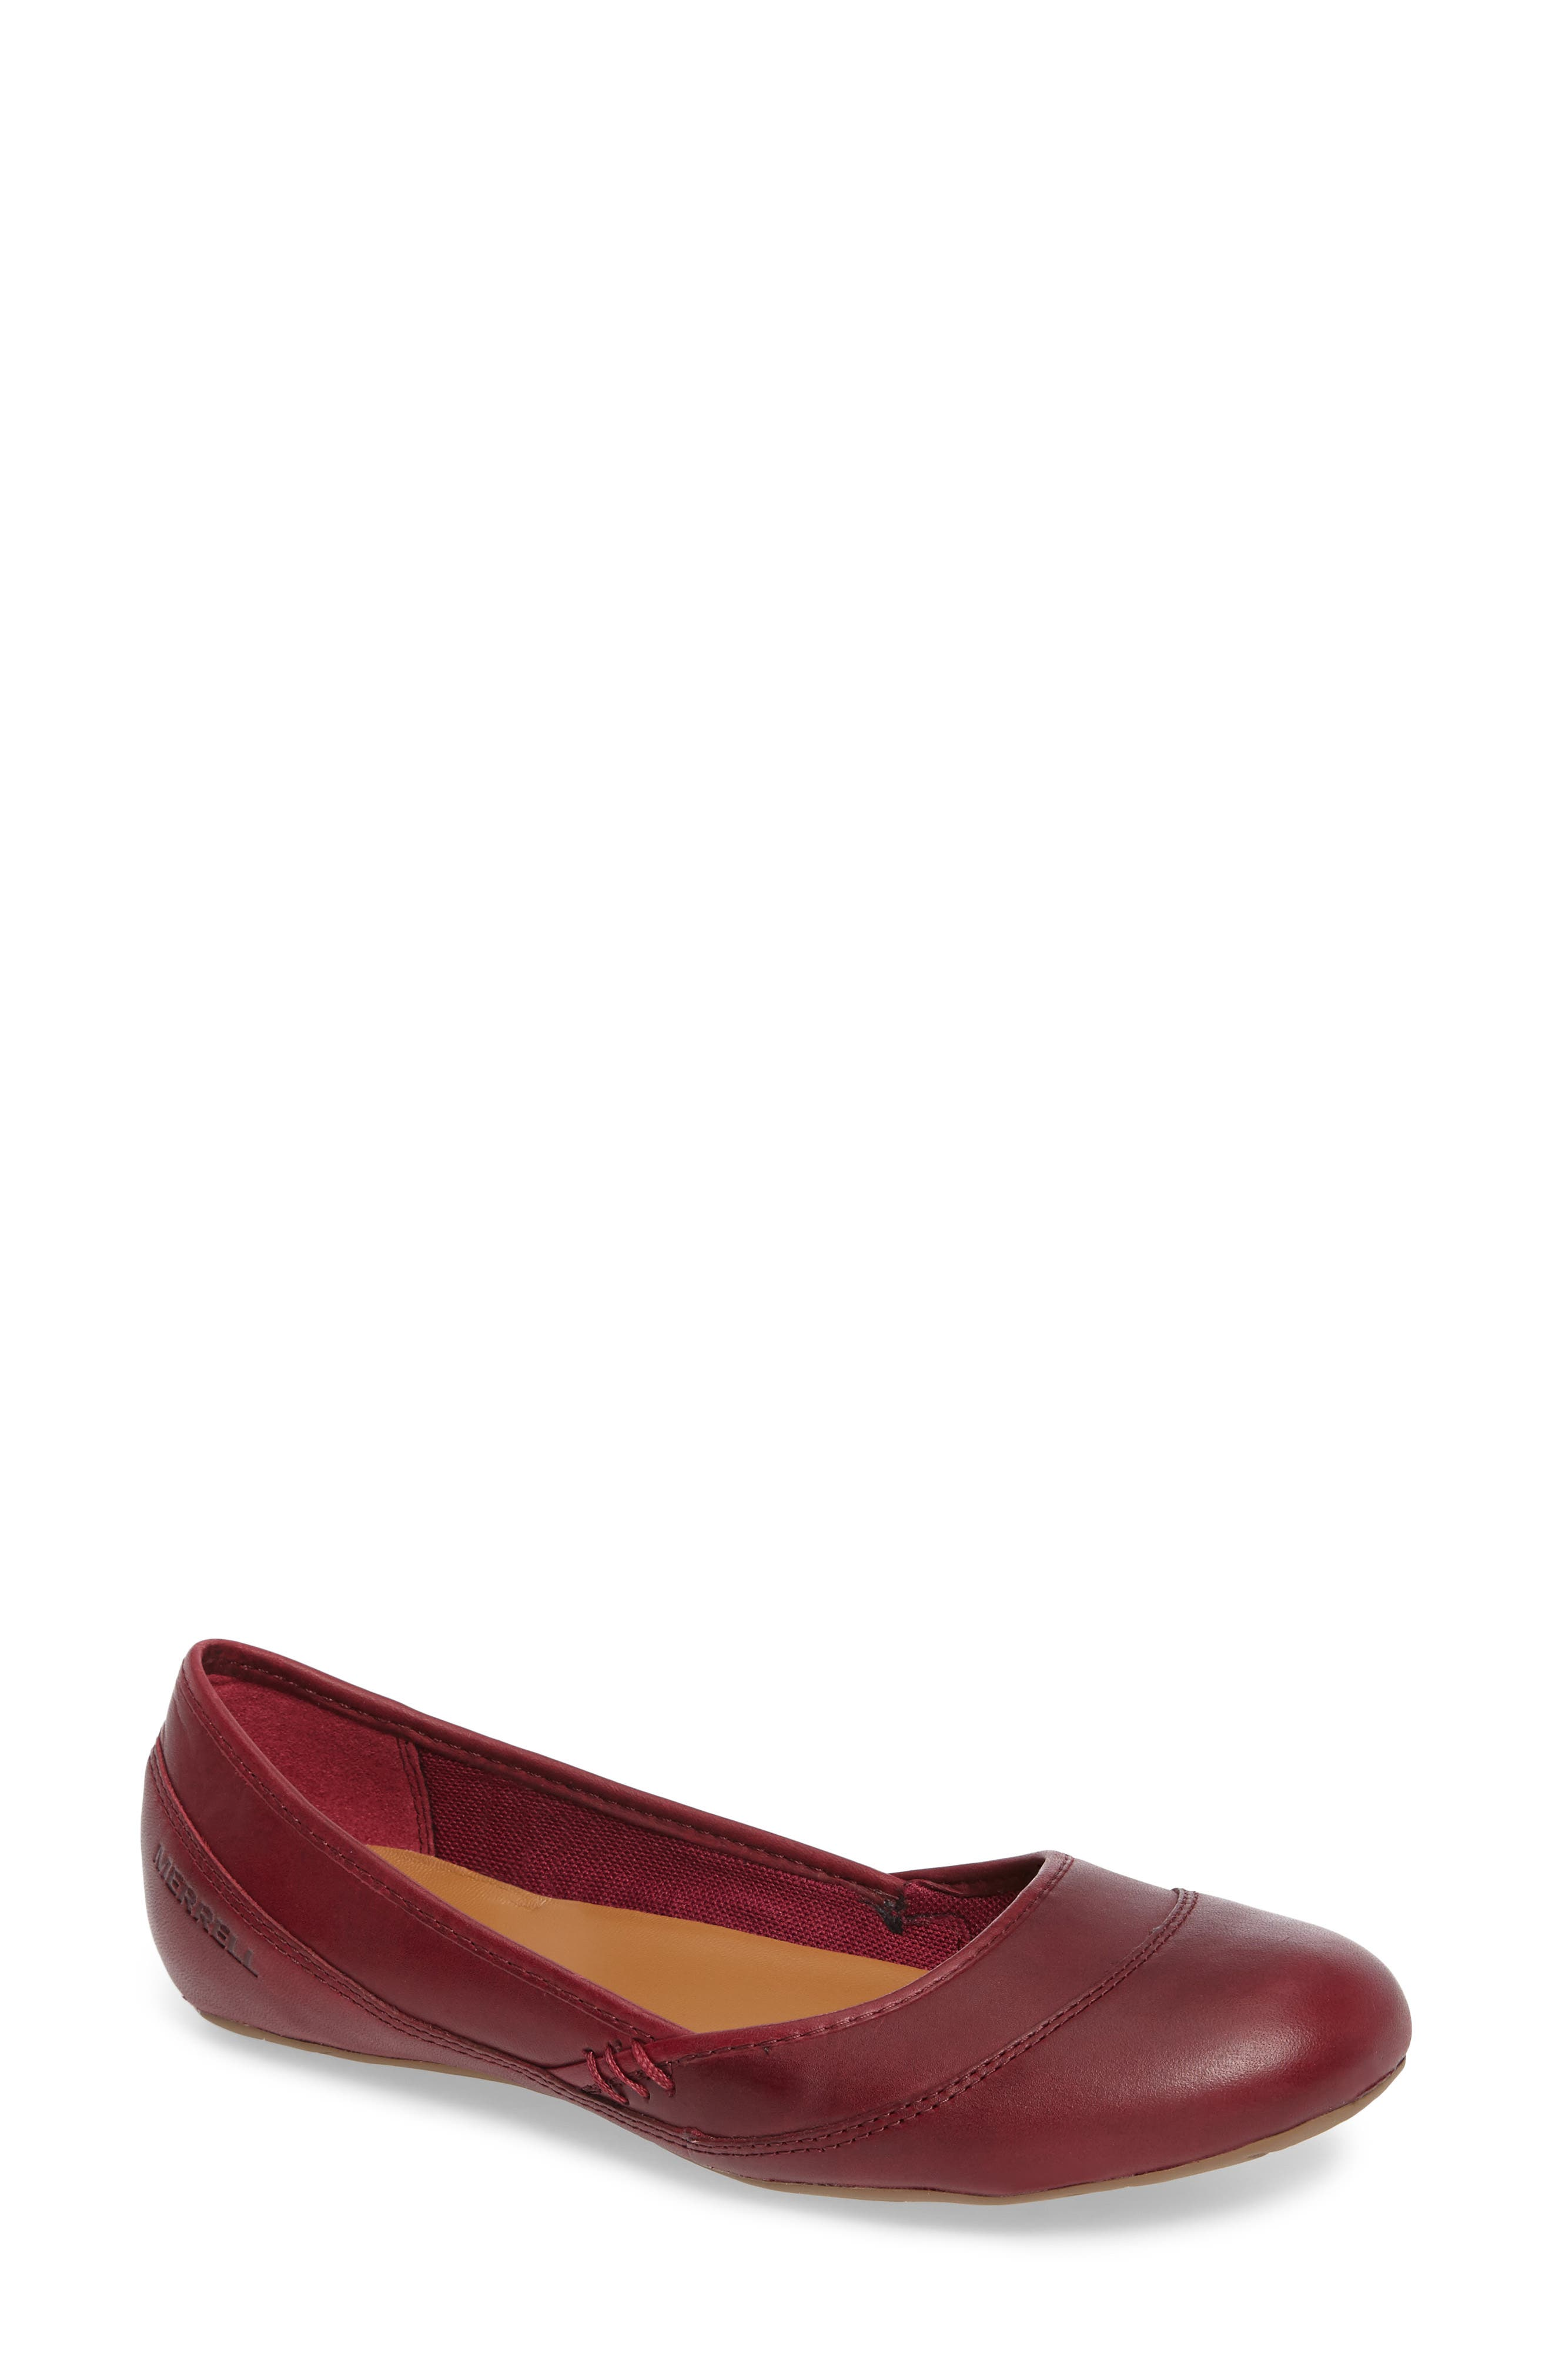 Ember Ballet Flat,                             Main thumbnail 1, color,                             Beet Red Leather